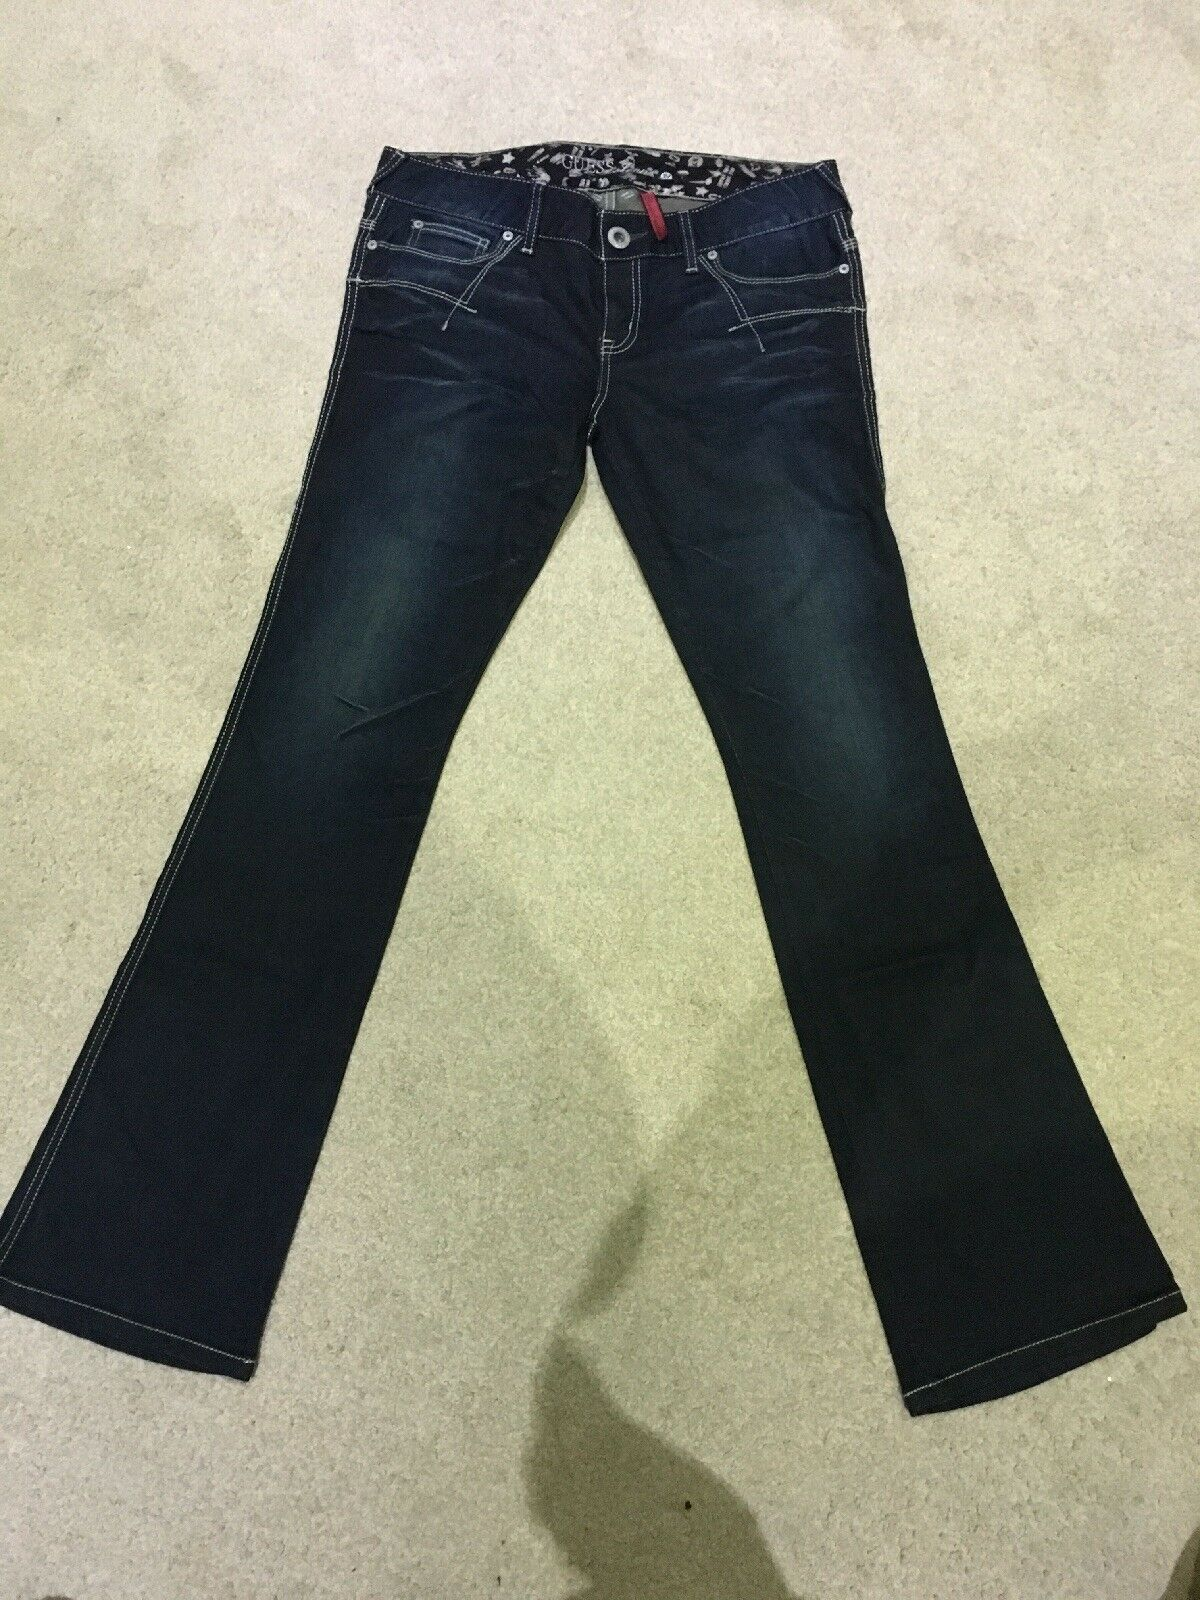 Ladies Guess Jean Size 31